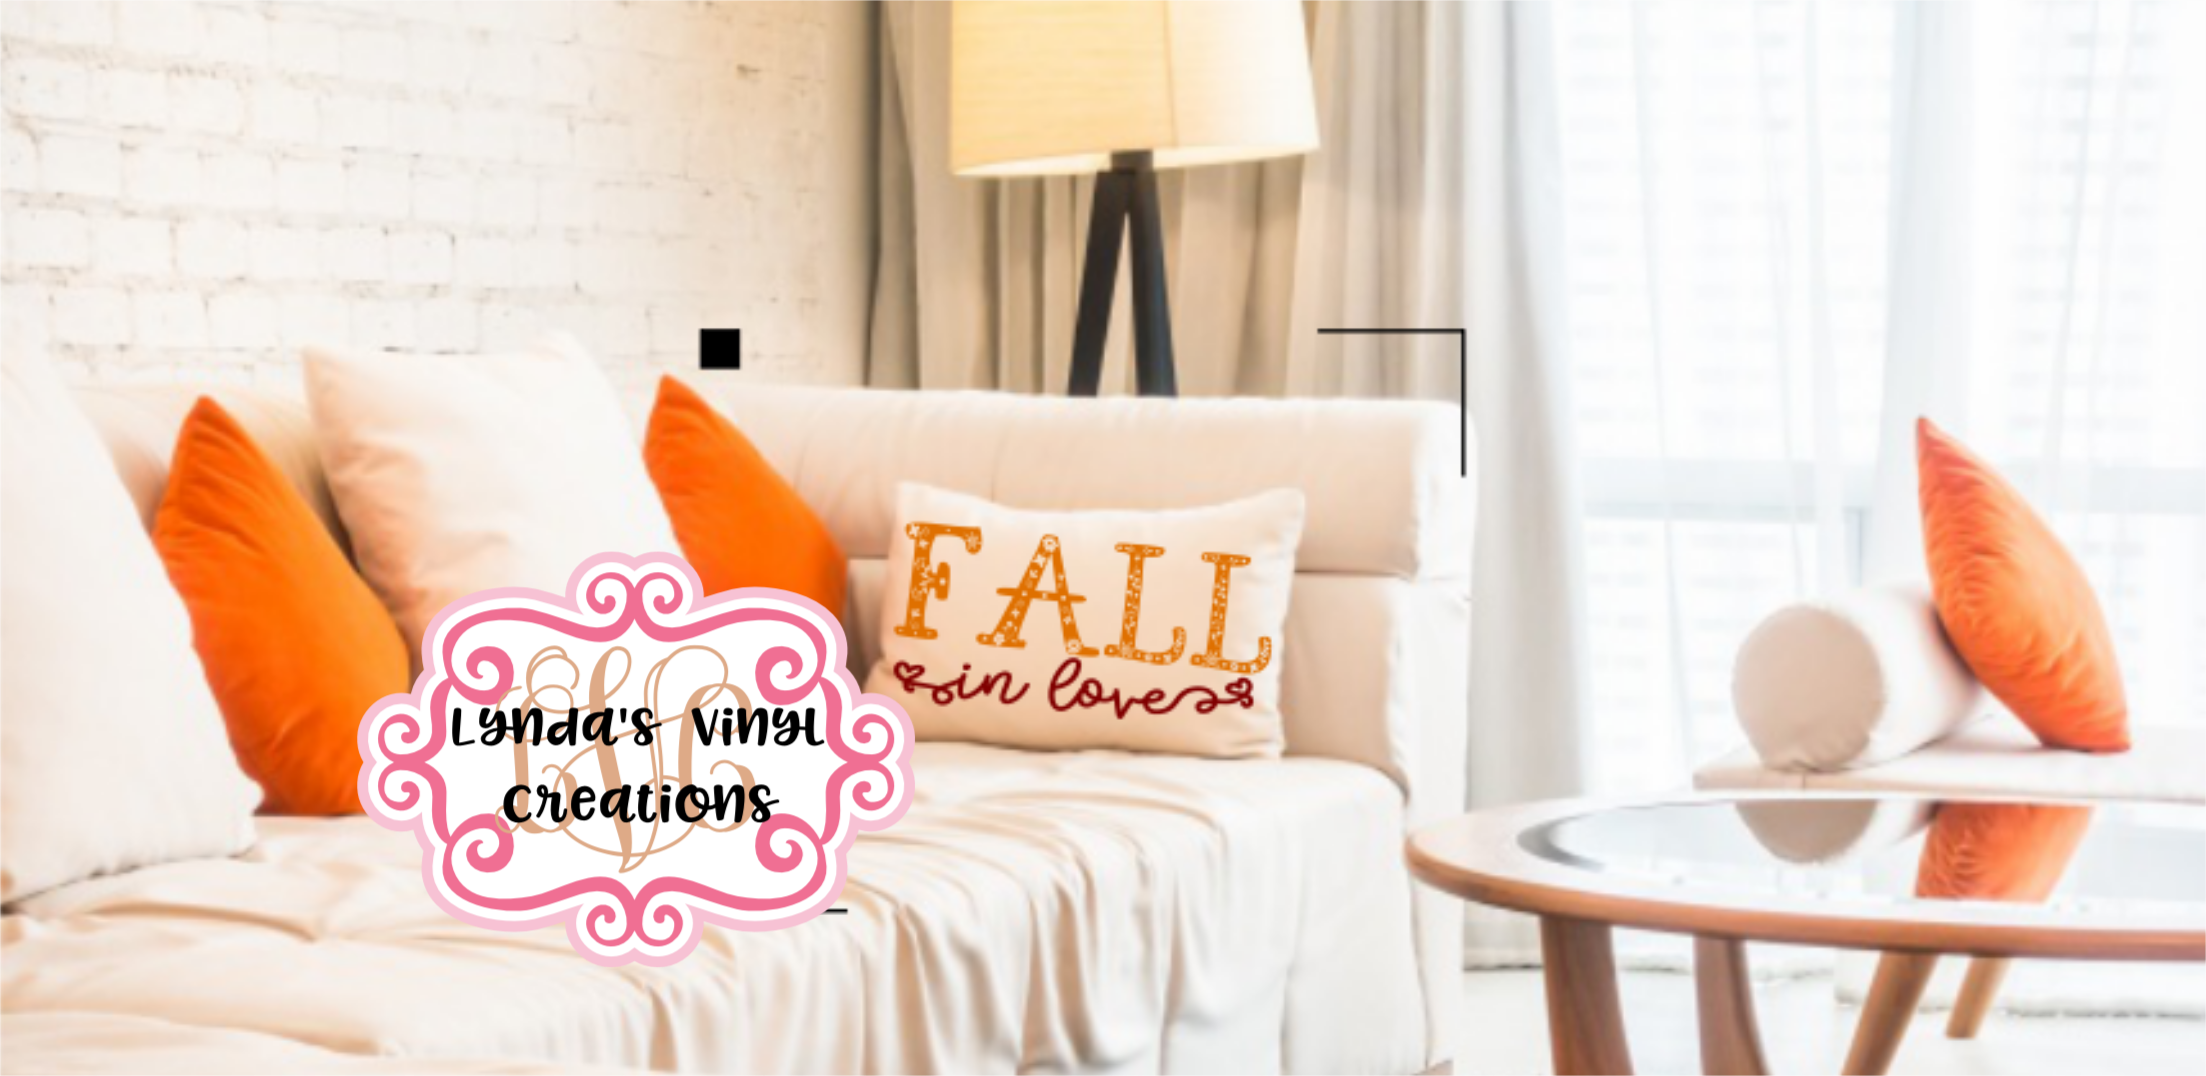 Download Free Fall In Love Studio File Graphic By Lynda S Cut Files Creative for Cricut Explore, Silhouette and other cutting machines.